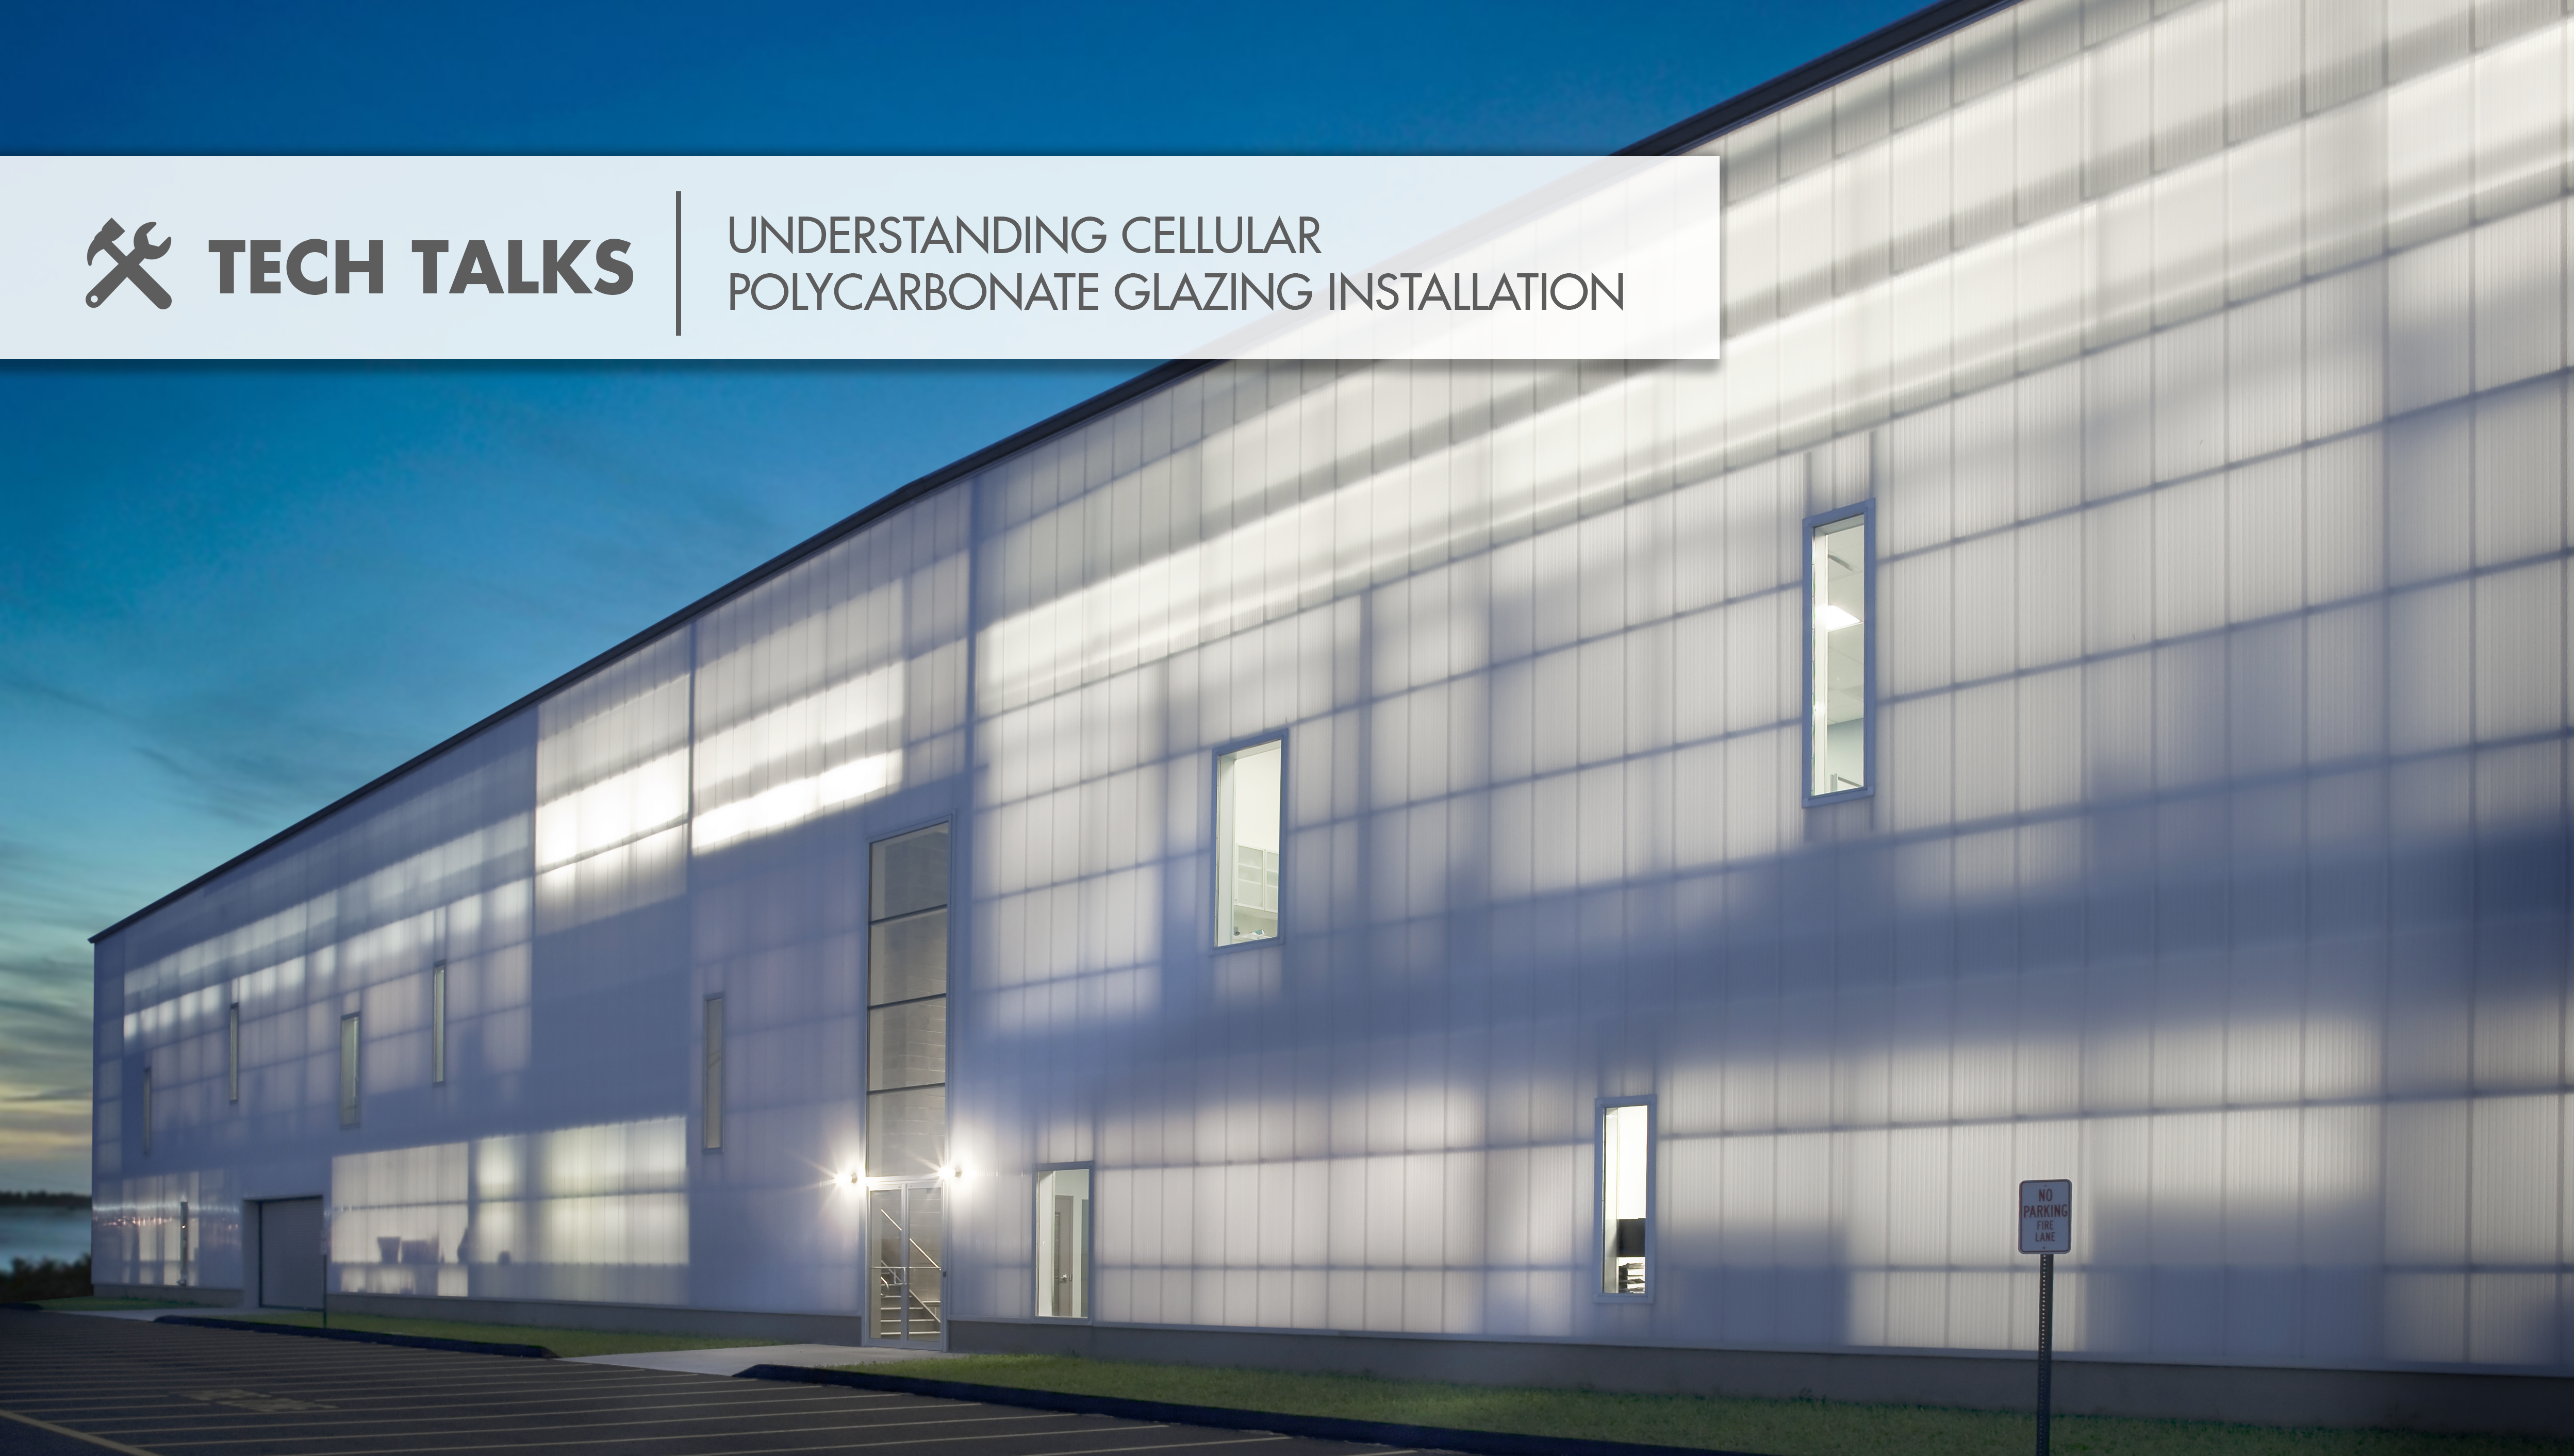 Questions surrounding the topic of installing cellular polycarbonate glazing products is something EXTECH hears a lot of.